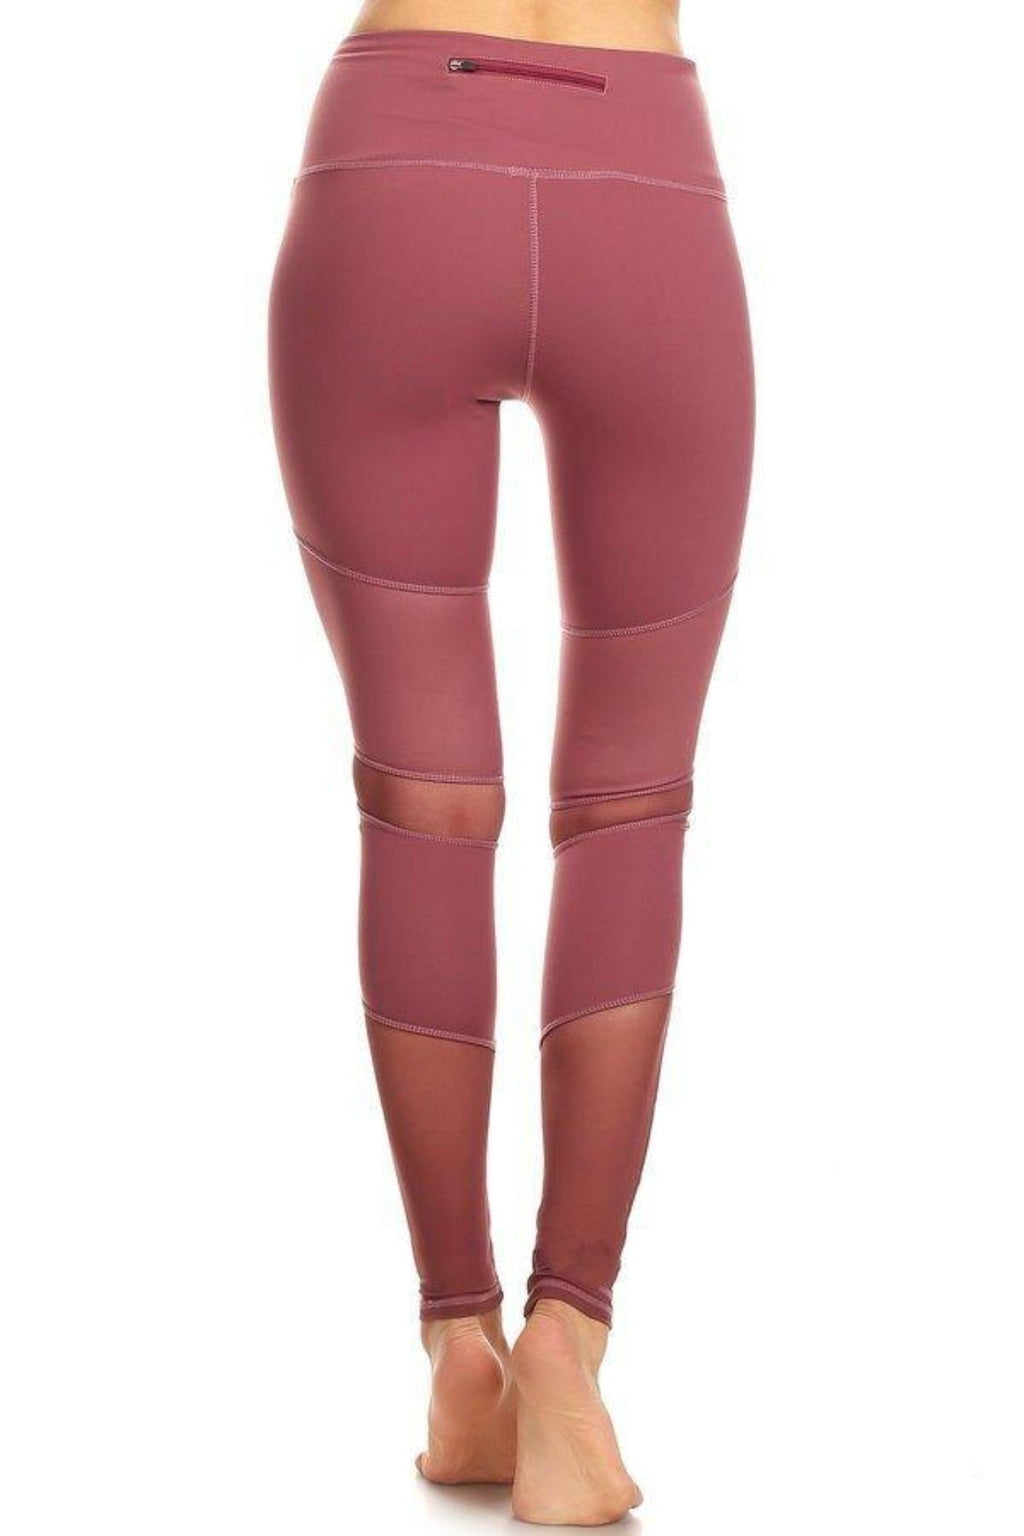 Peru Activewear Mesh Leggings- Mauve Clothing Fair Shade